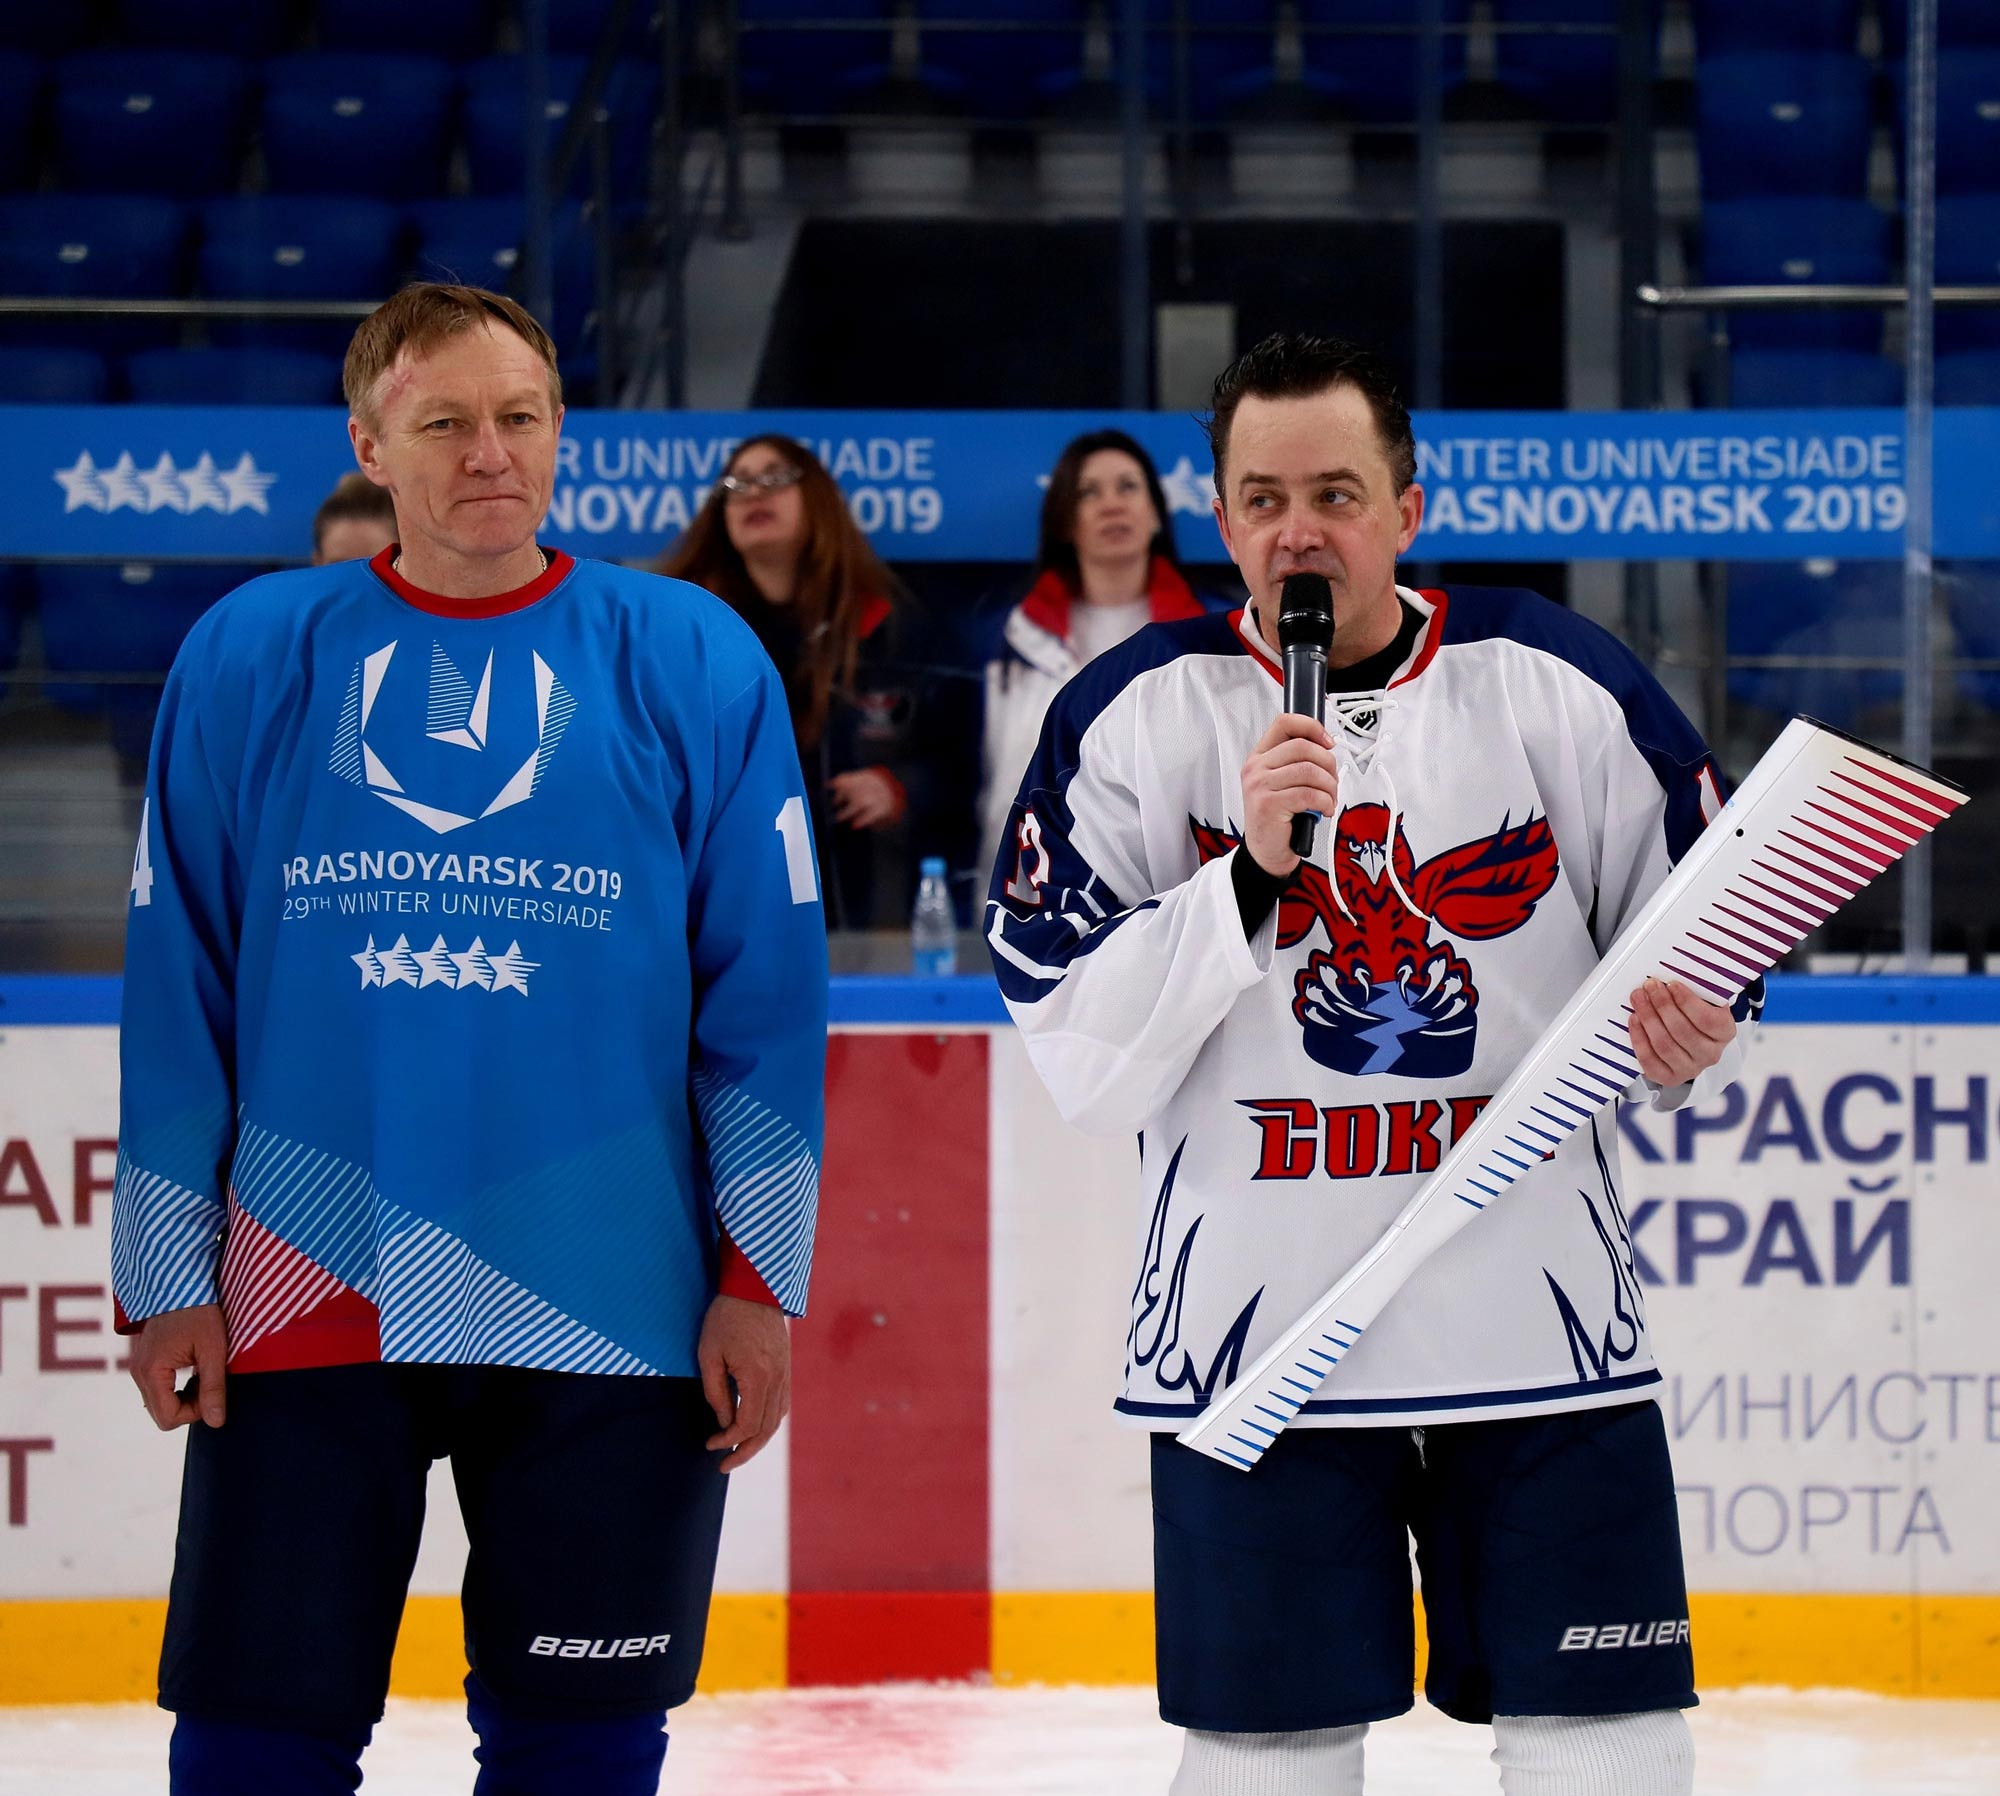 One of the Universiade Flame torches was sent to the ice hockey club Sokol ©FISU